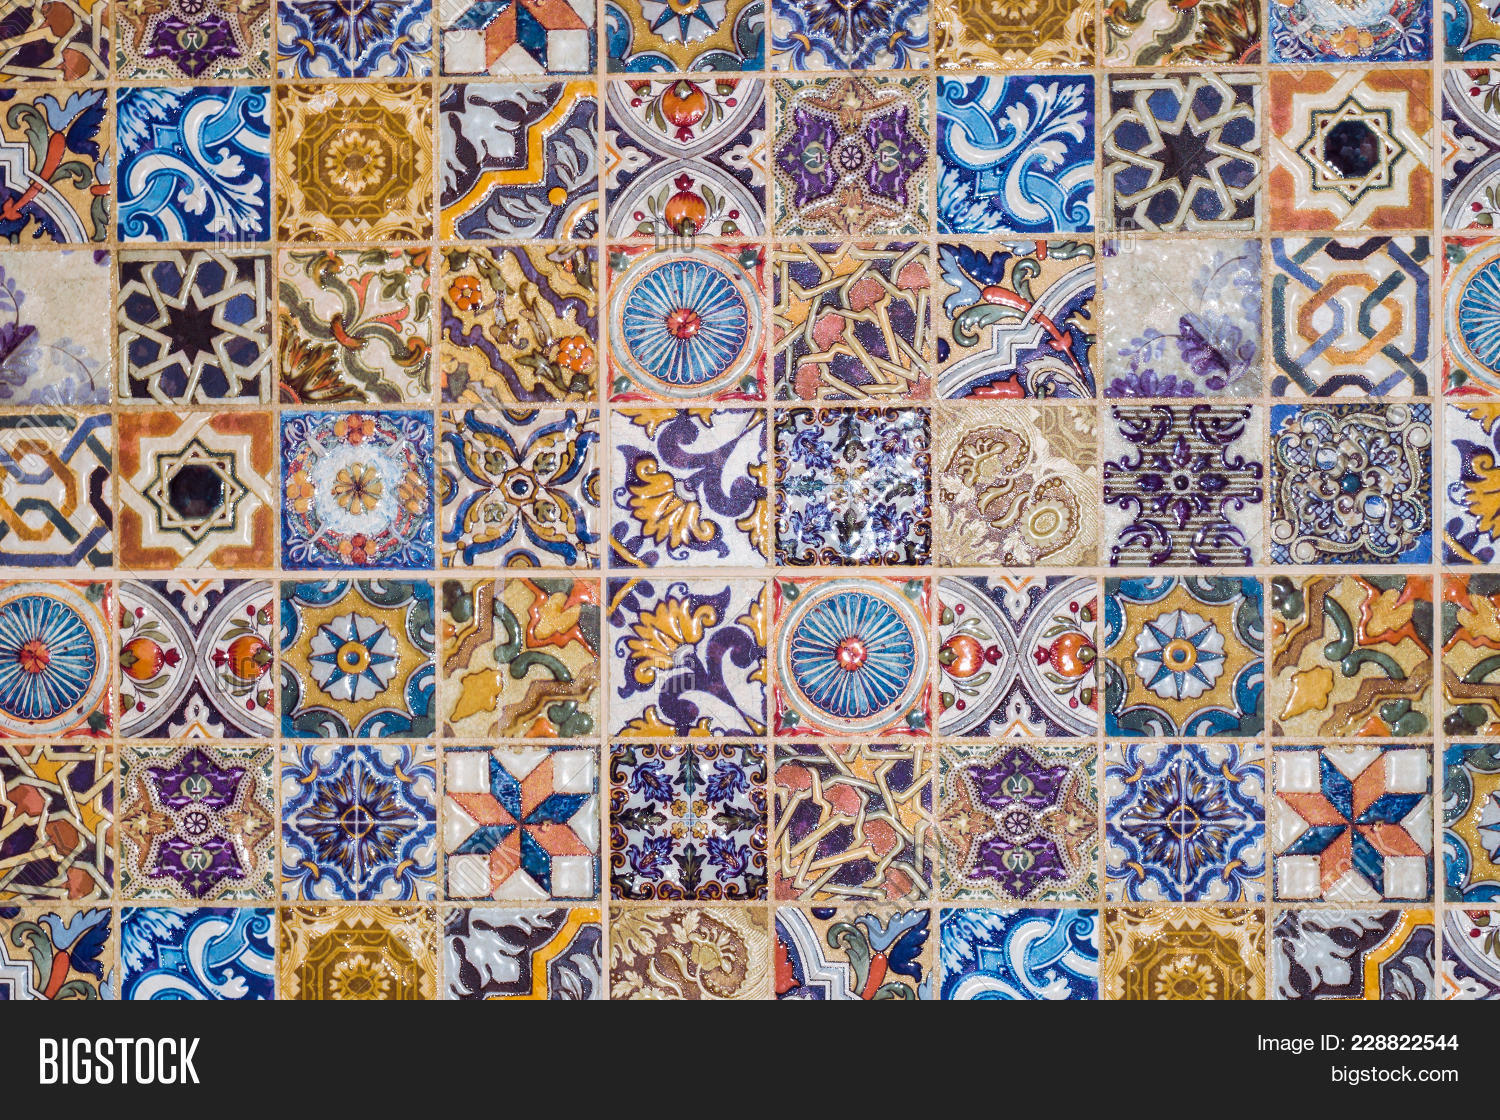 Traditional european ceramic mosaic image photo bigstock traditional european ceramic mosaic tile pattern dailygadgetfo Image collections